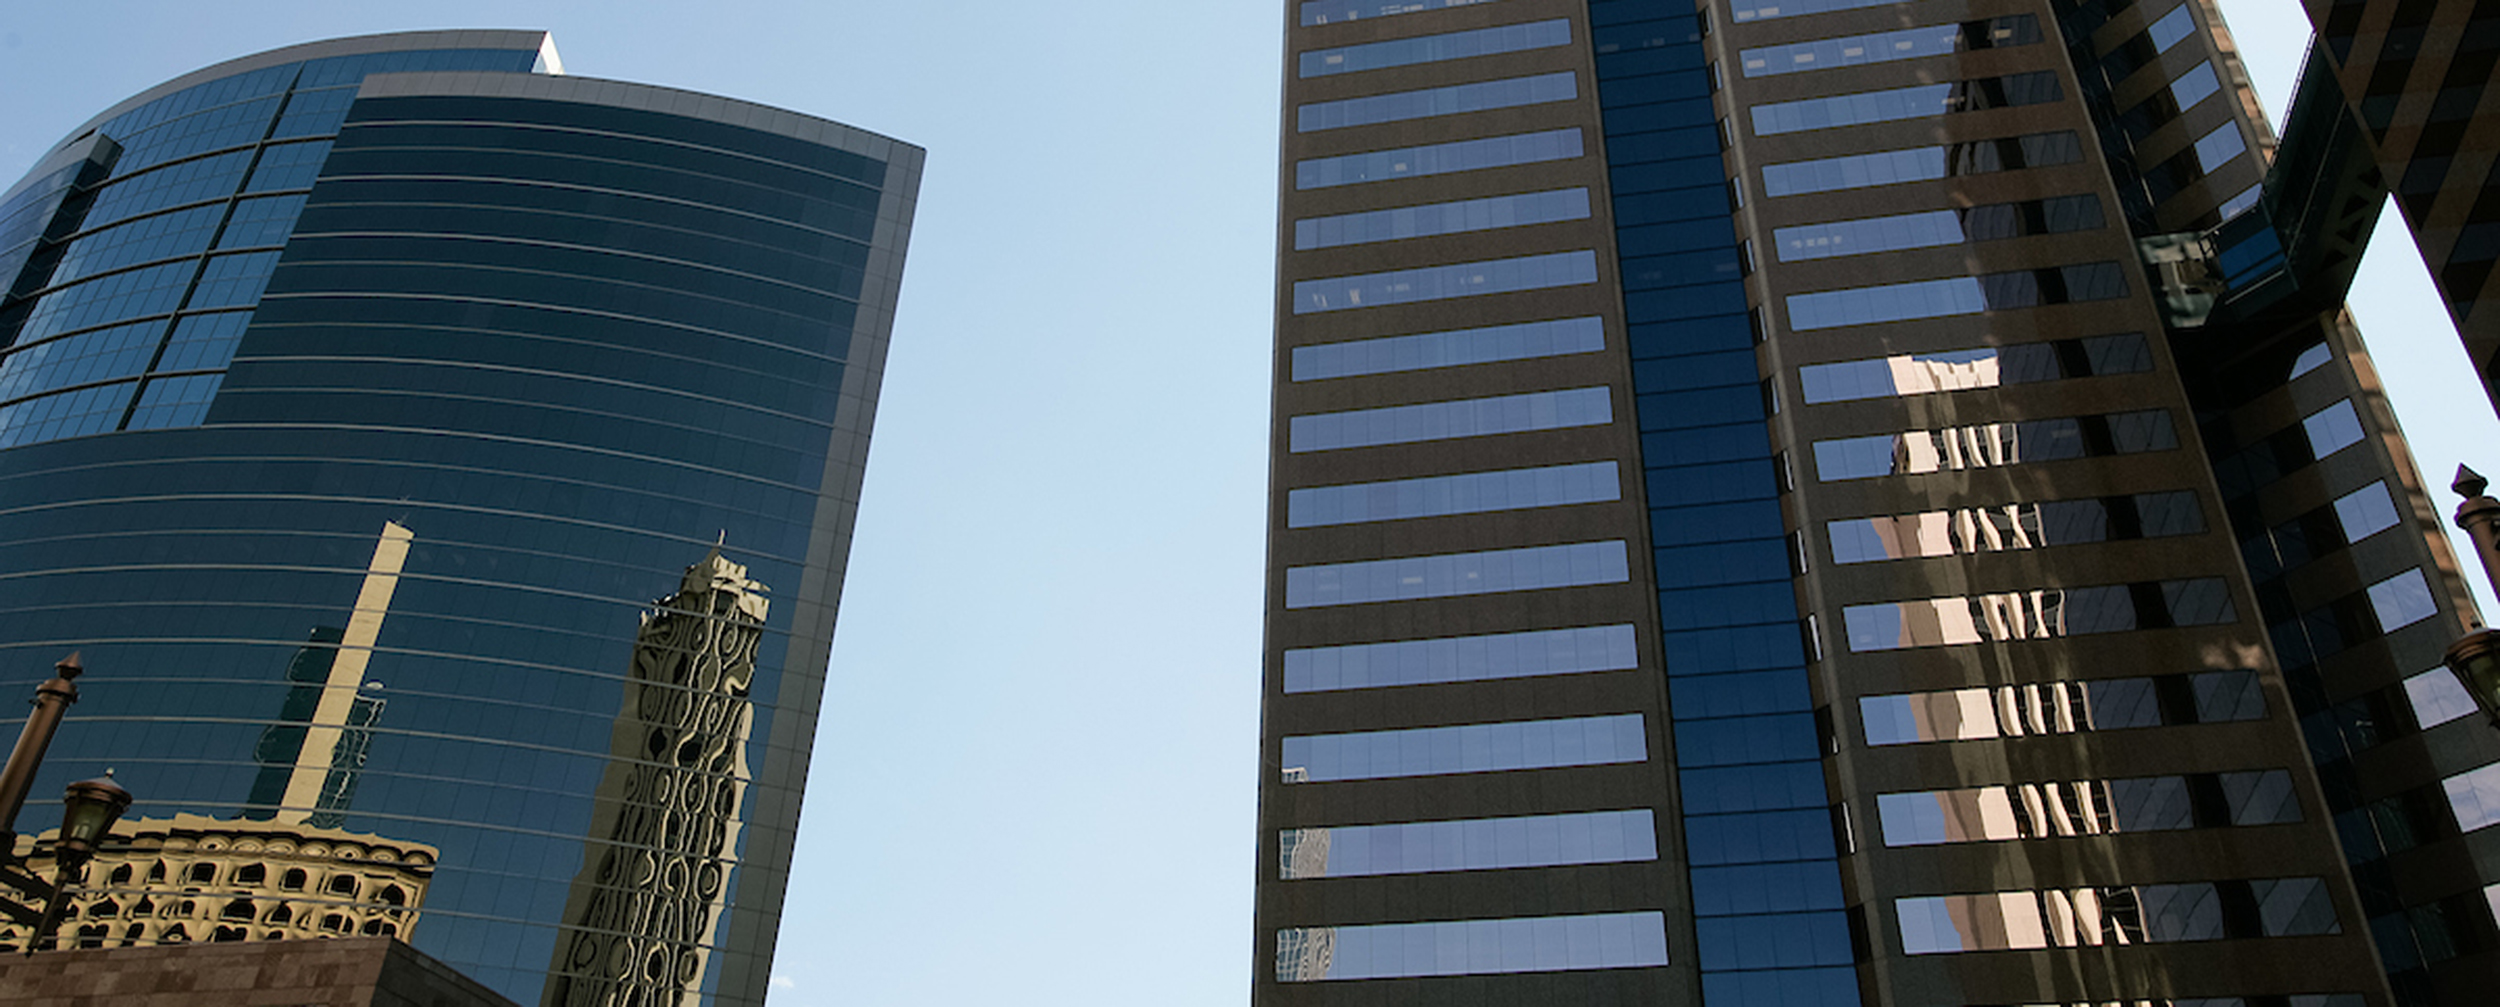 Photo of building exteriors in downtown Phoenix